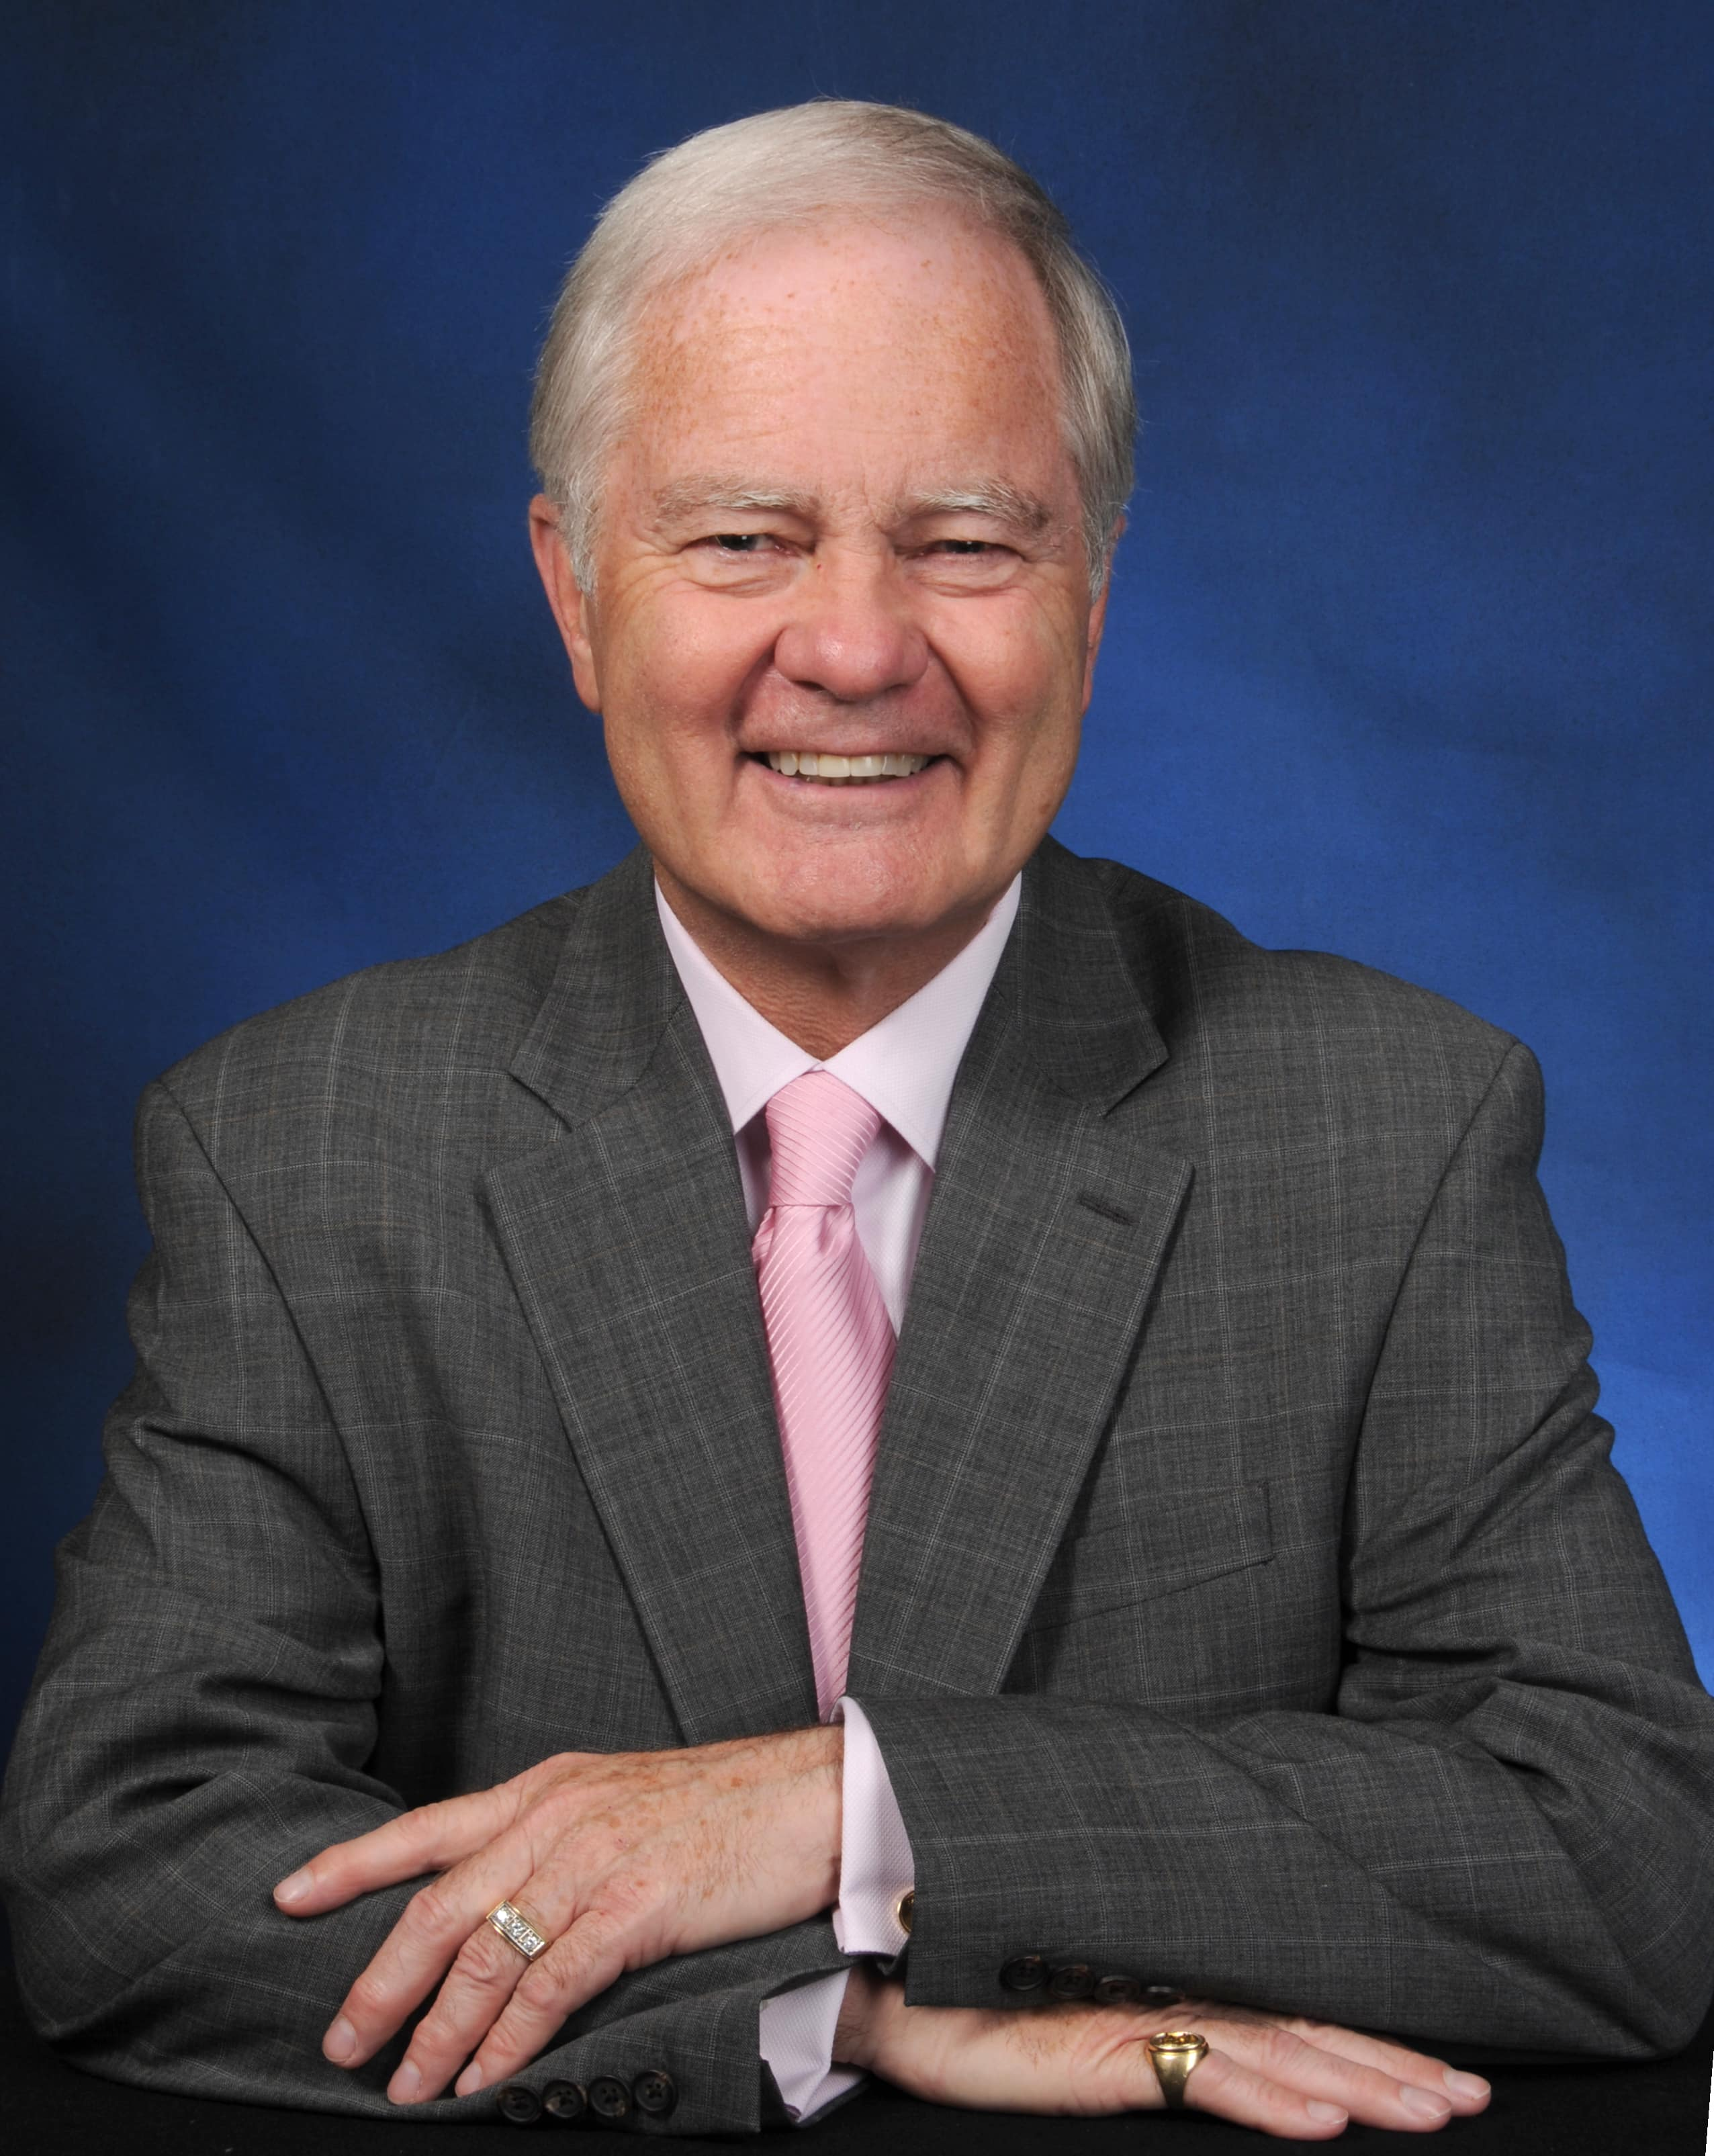 Board of Trustees member Ronald Keys